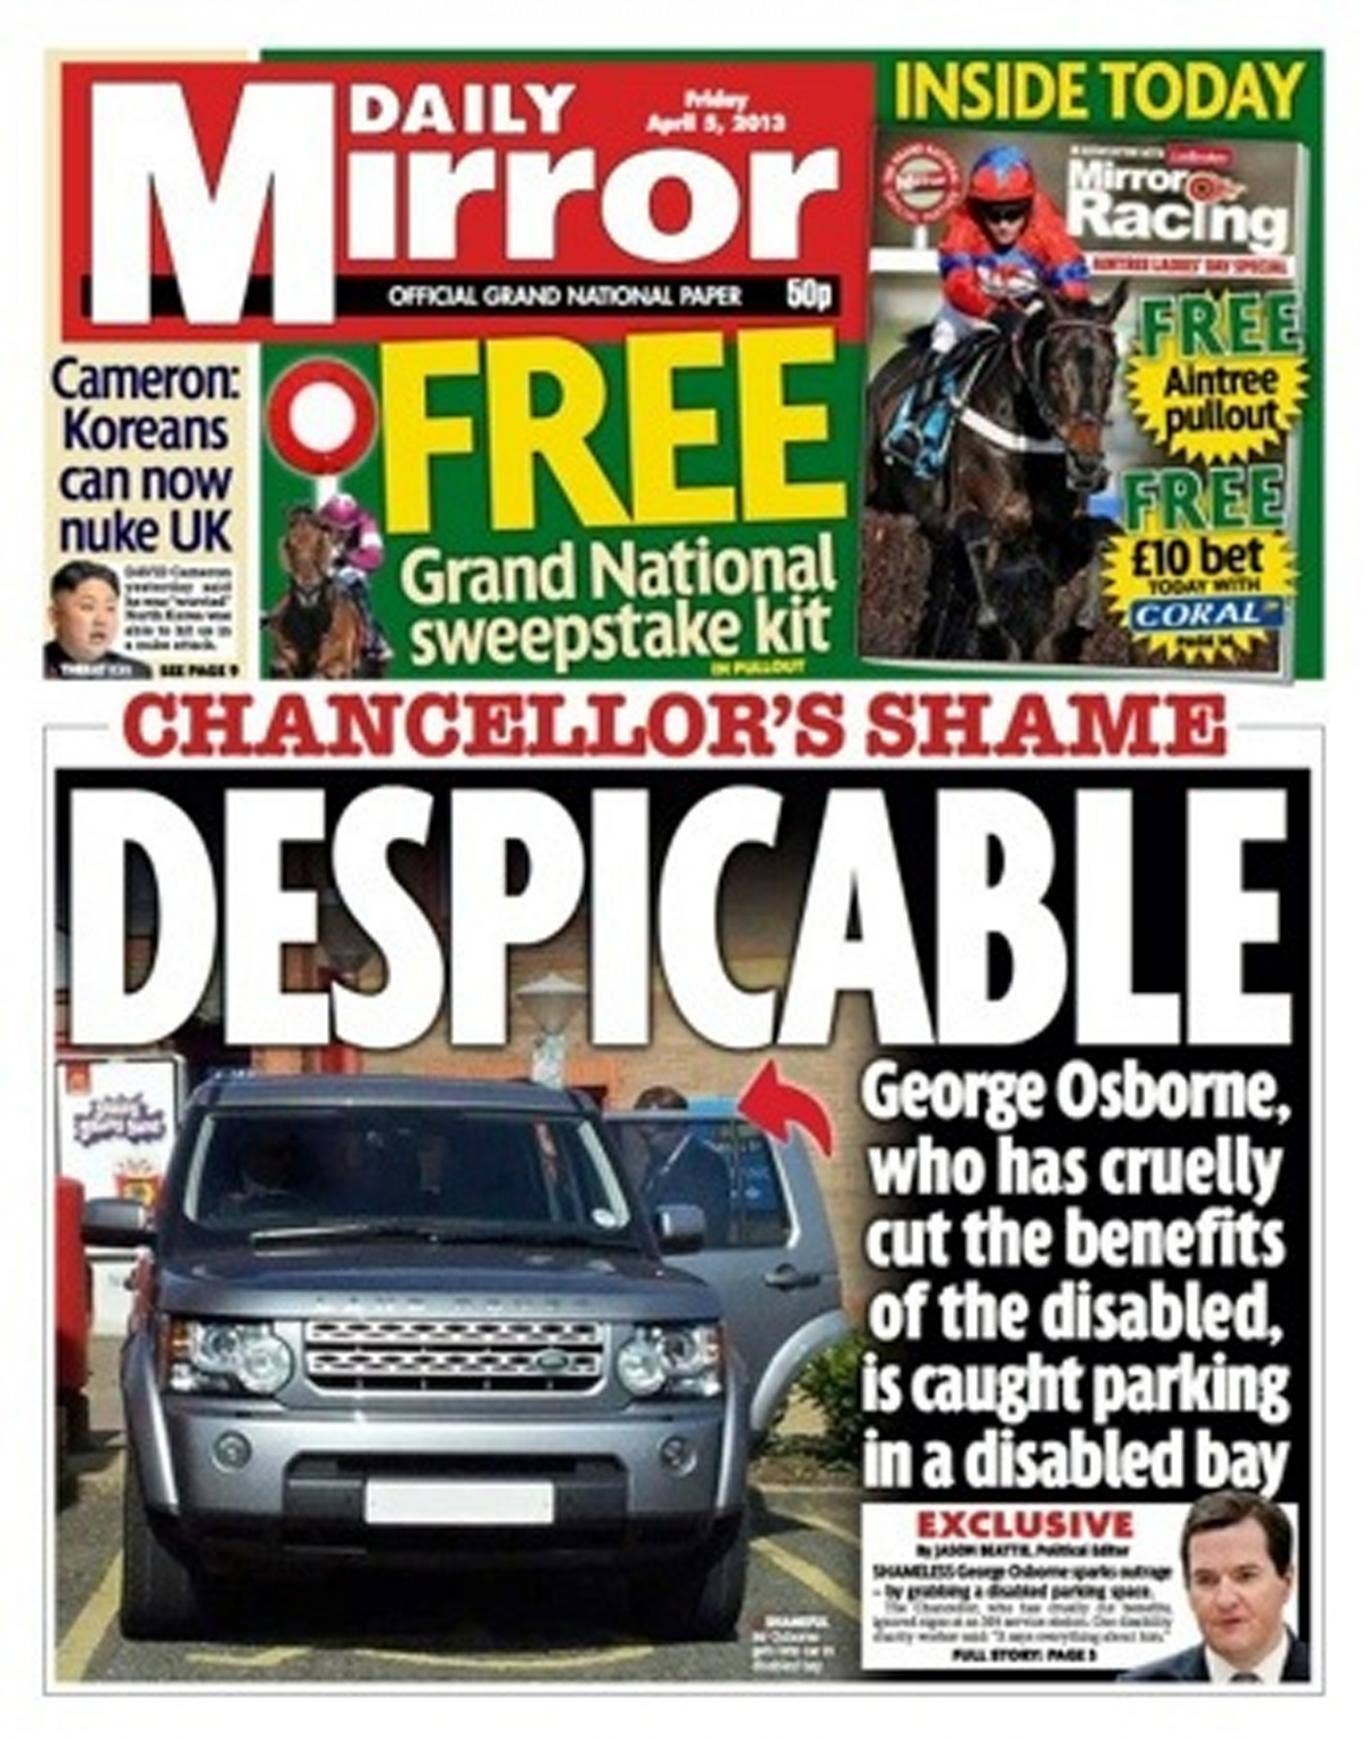 The front page of today's Mirror, showing George Osborne's car parked in a disabled bay at Magor services